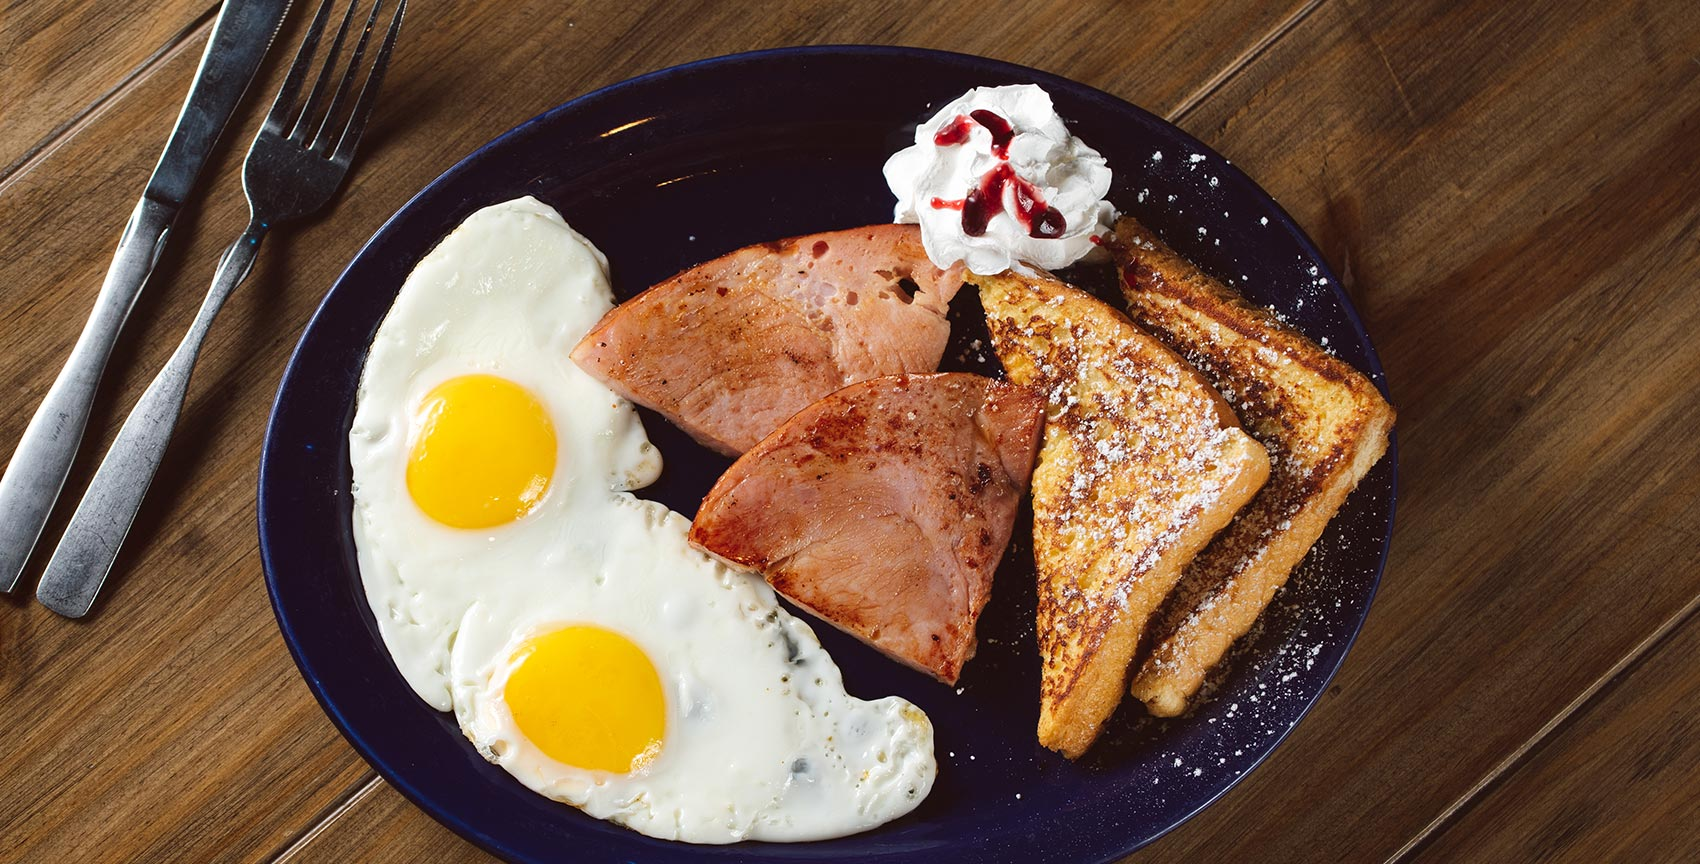 best-breakfast-st-pete-4th-street-st-pete-tampa-area-eggs-bacon-coffee-restaurant